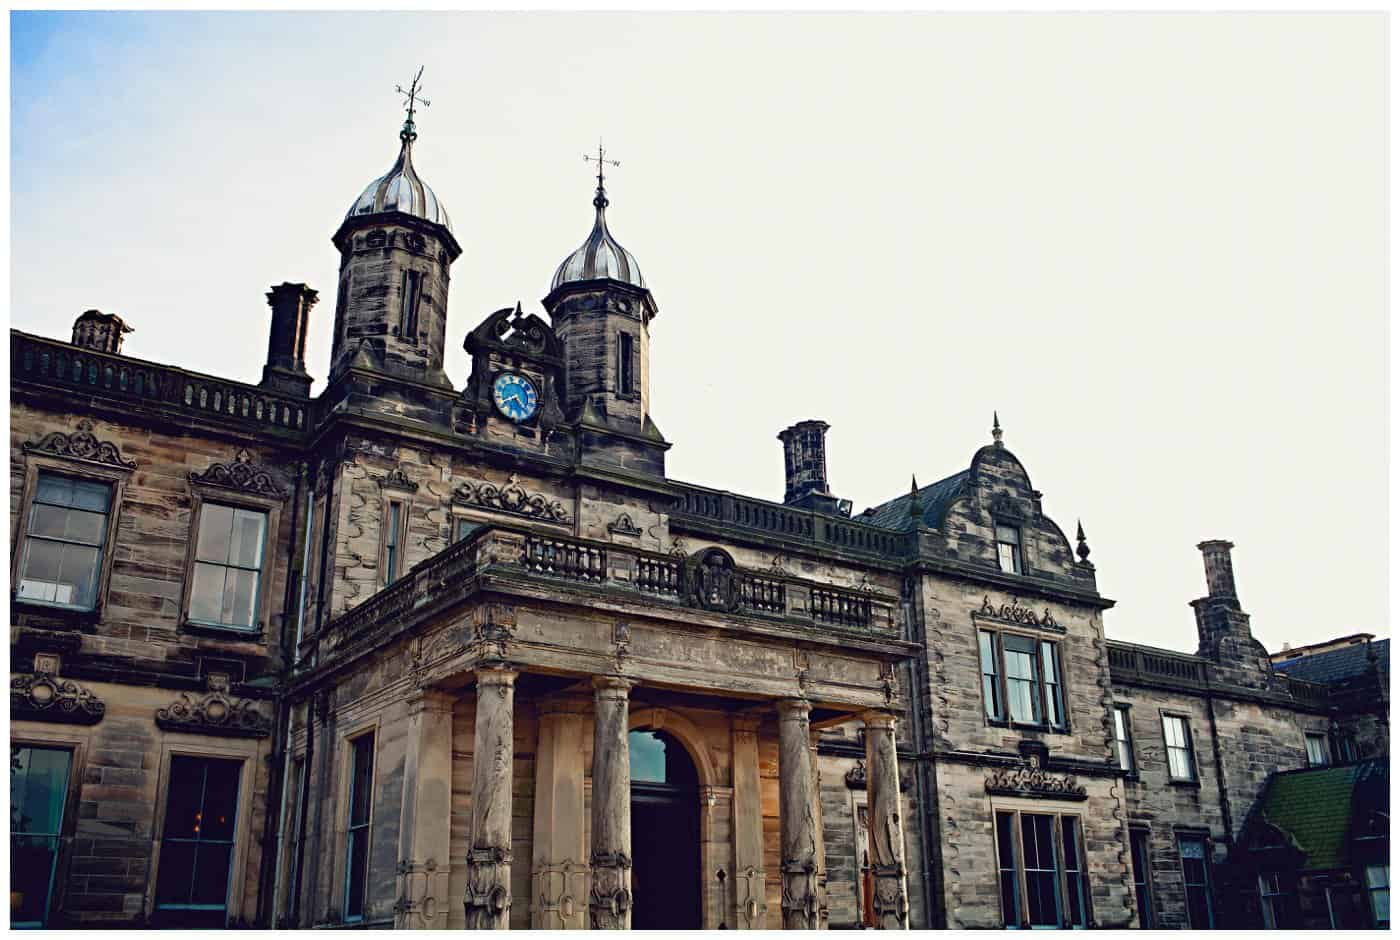 Sandon Hall Wedding venue